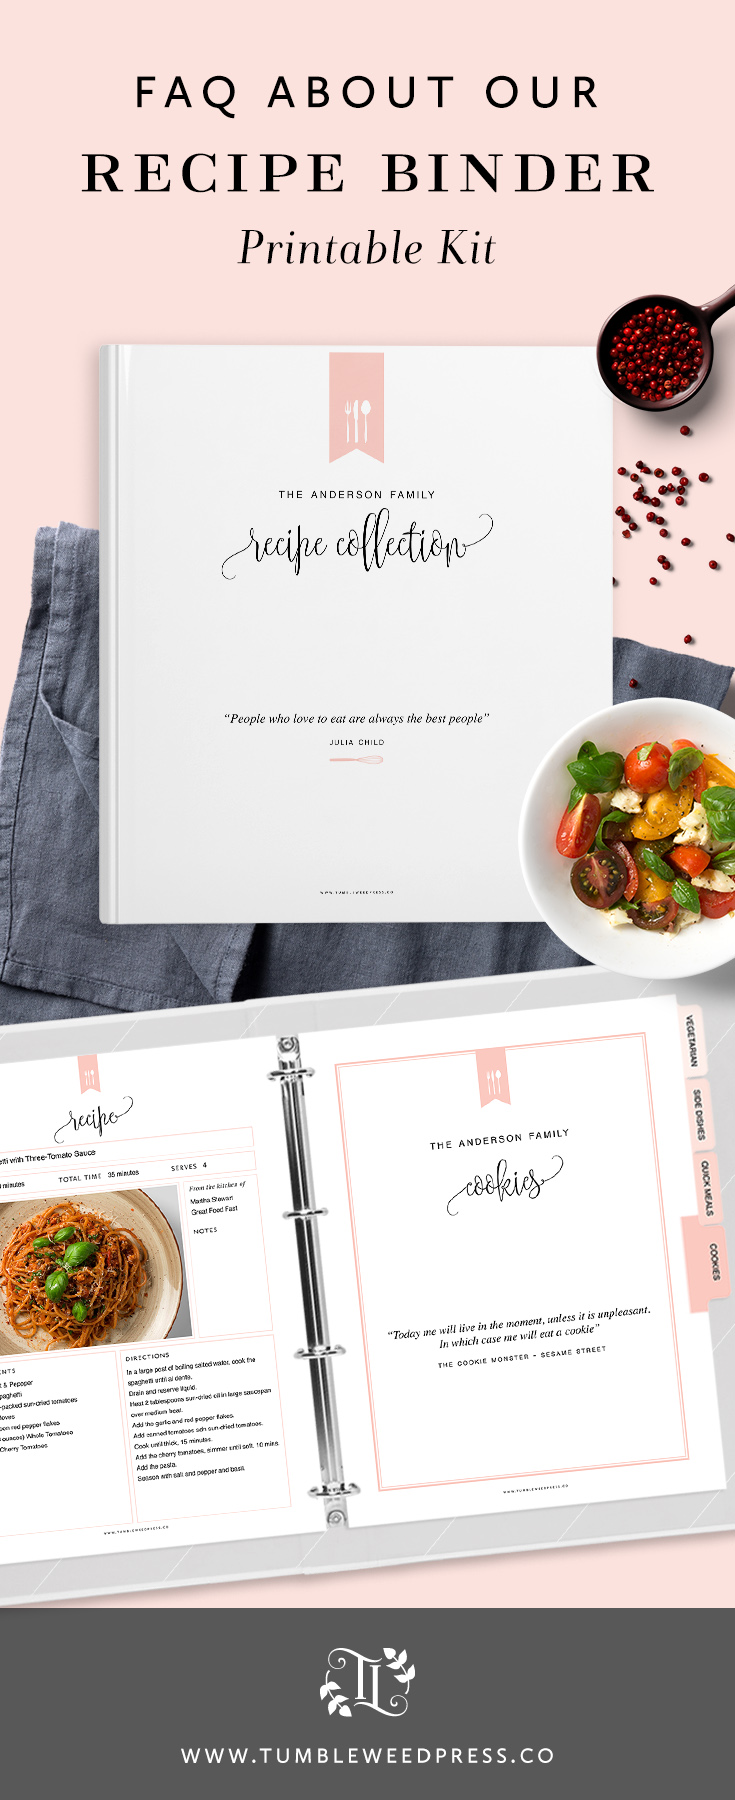 Recipe Binder Printable Kit FAQ Answered by TumbleweedPress.Co